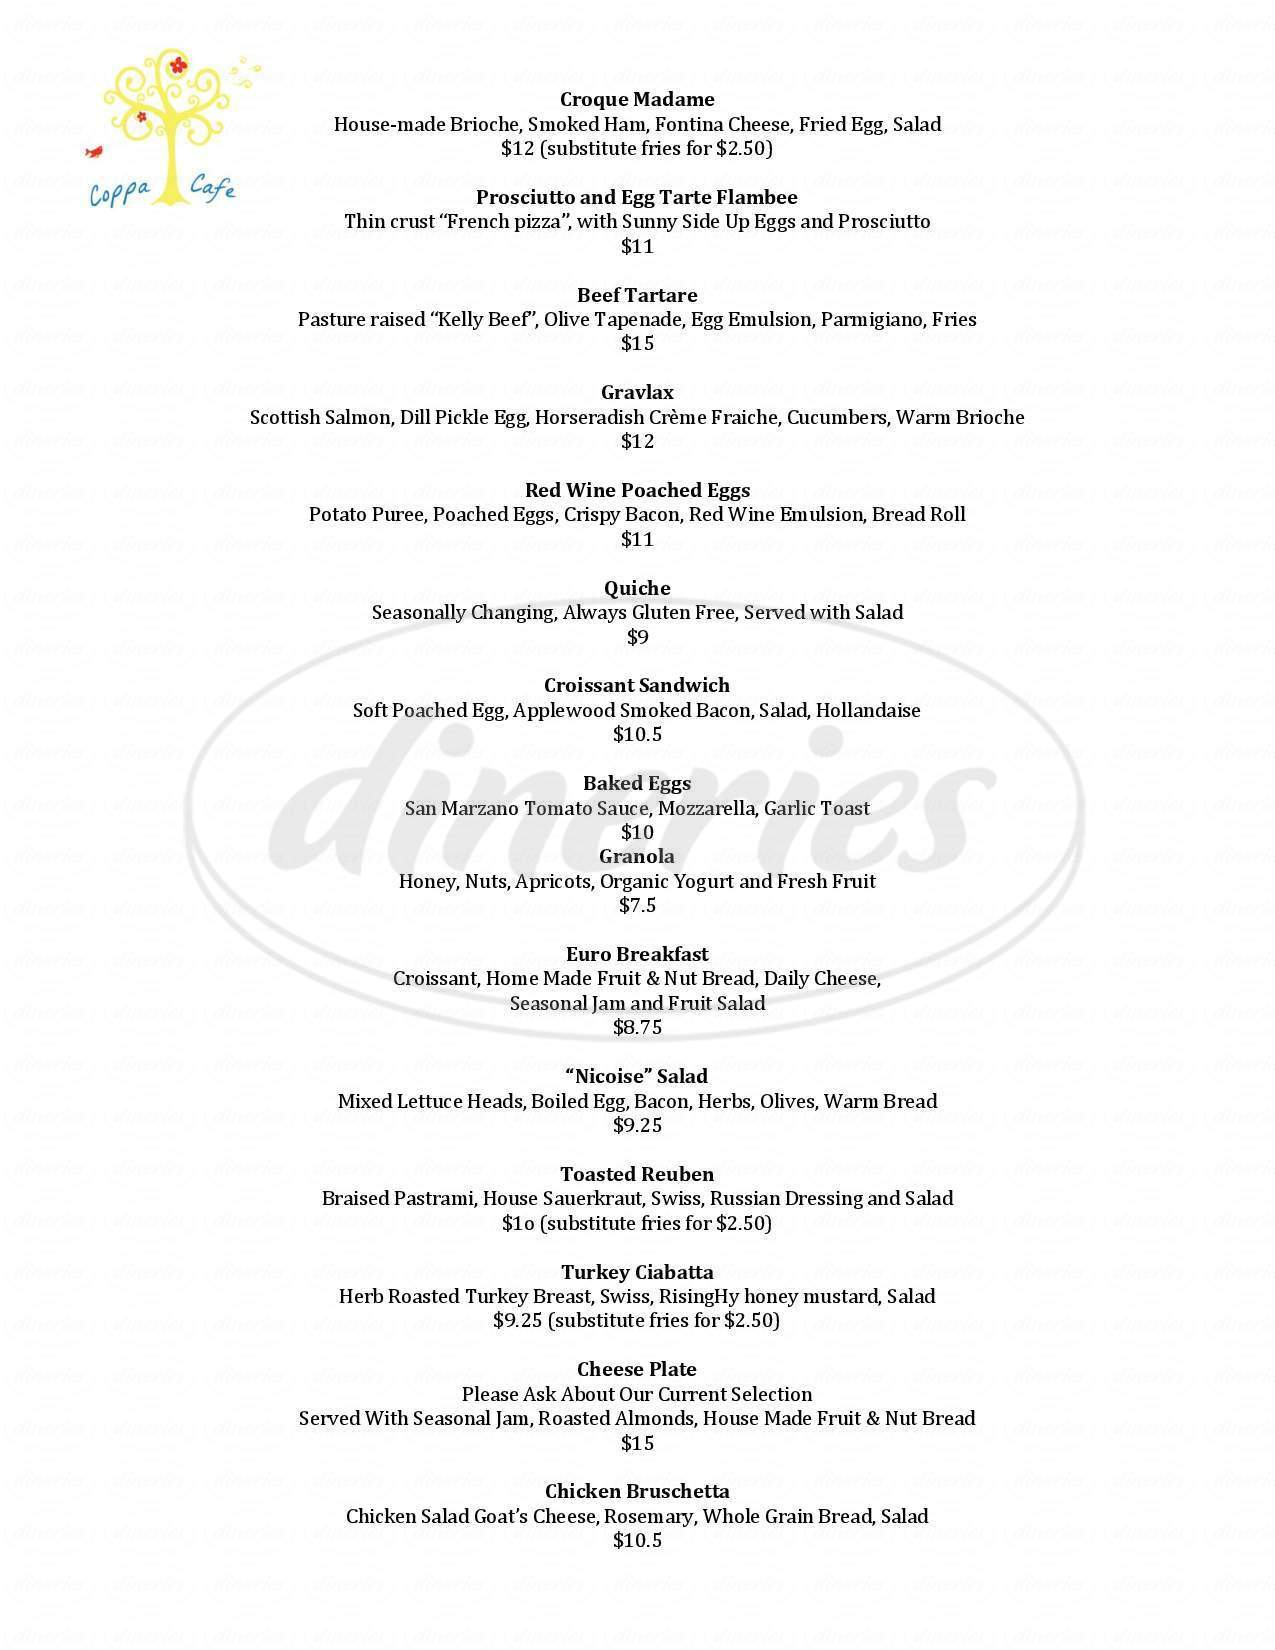 coppa cafe and bistro menu - flagstaff - dineries